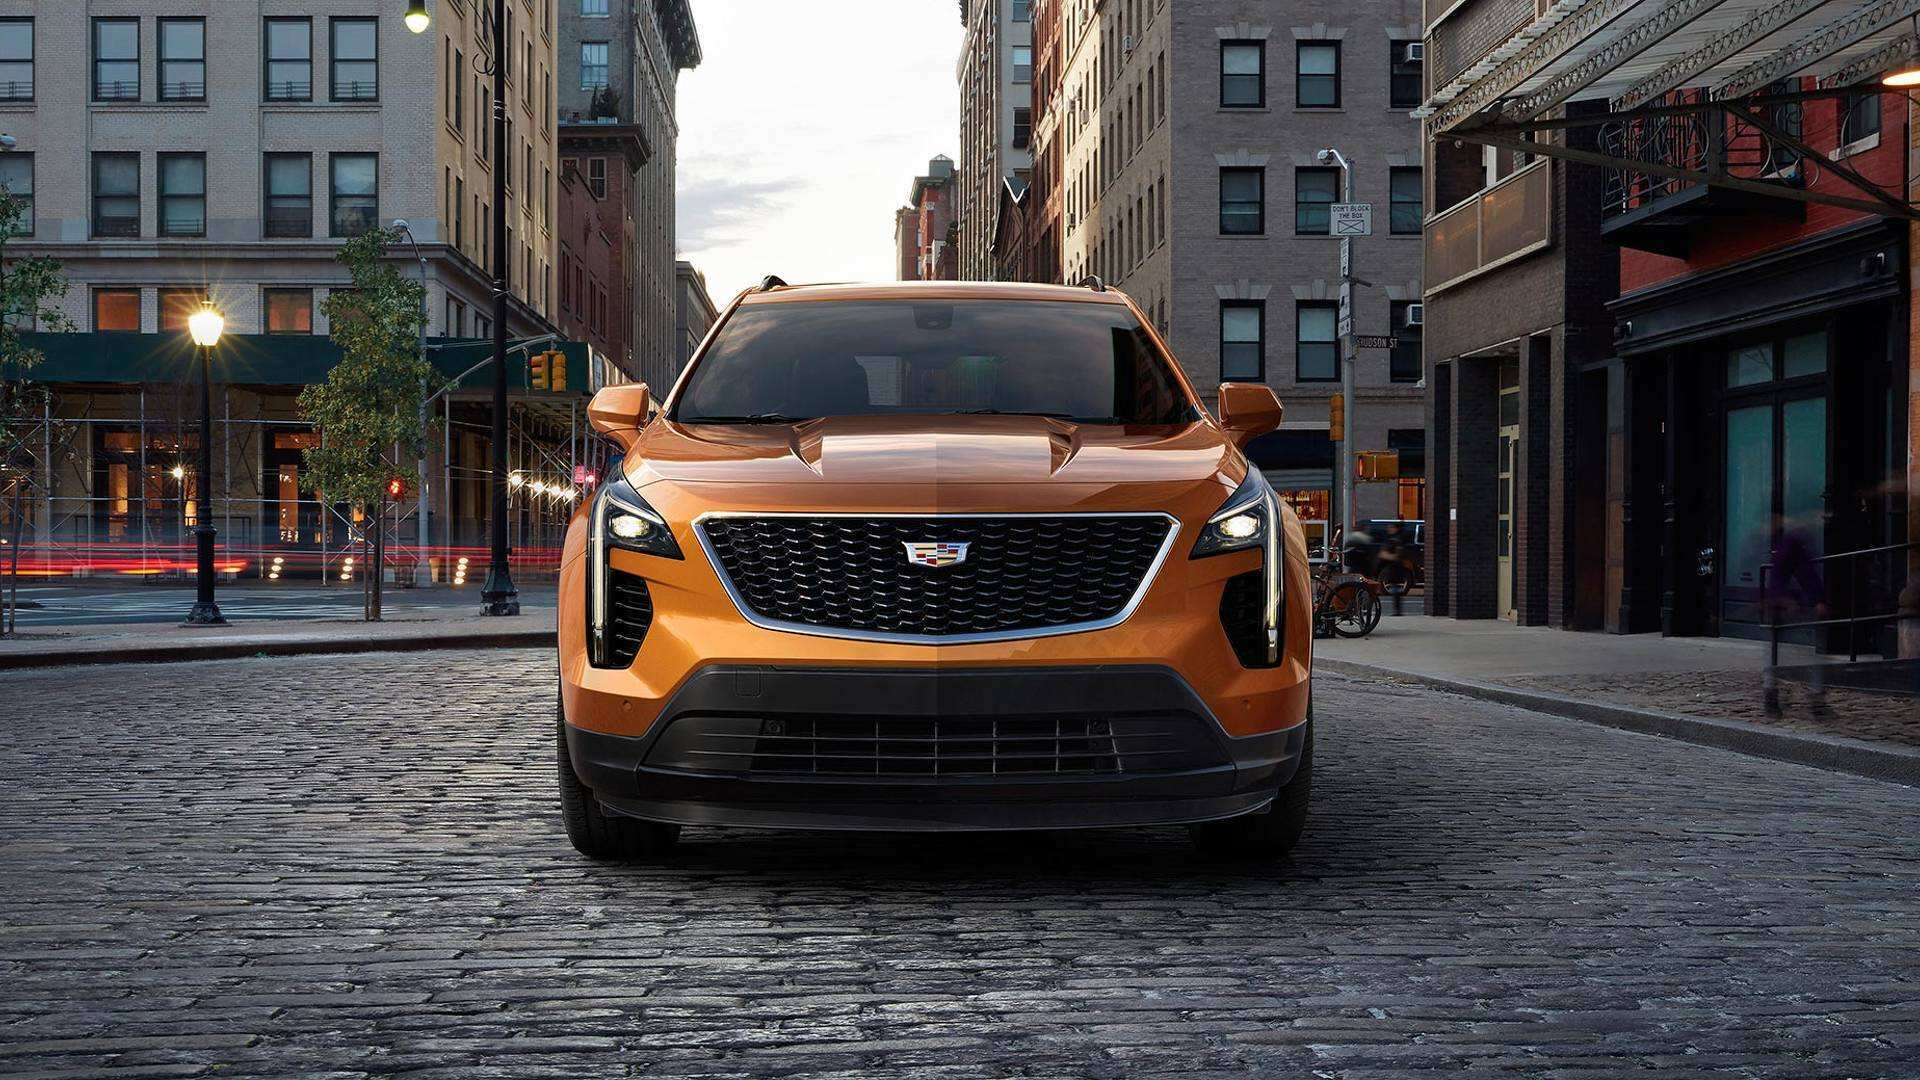 48 Great New Cadillac Xt4 2019 Images Engine Spy Shoot by New Cadillac Xt4 2019 Images Engine